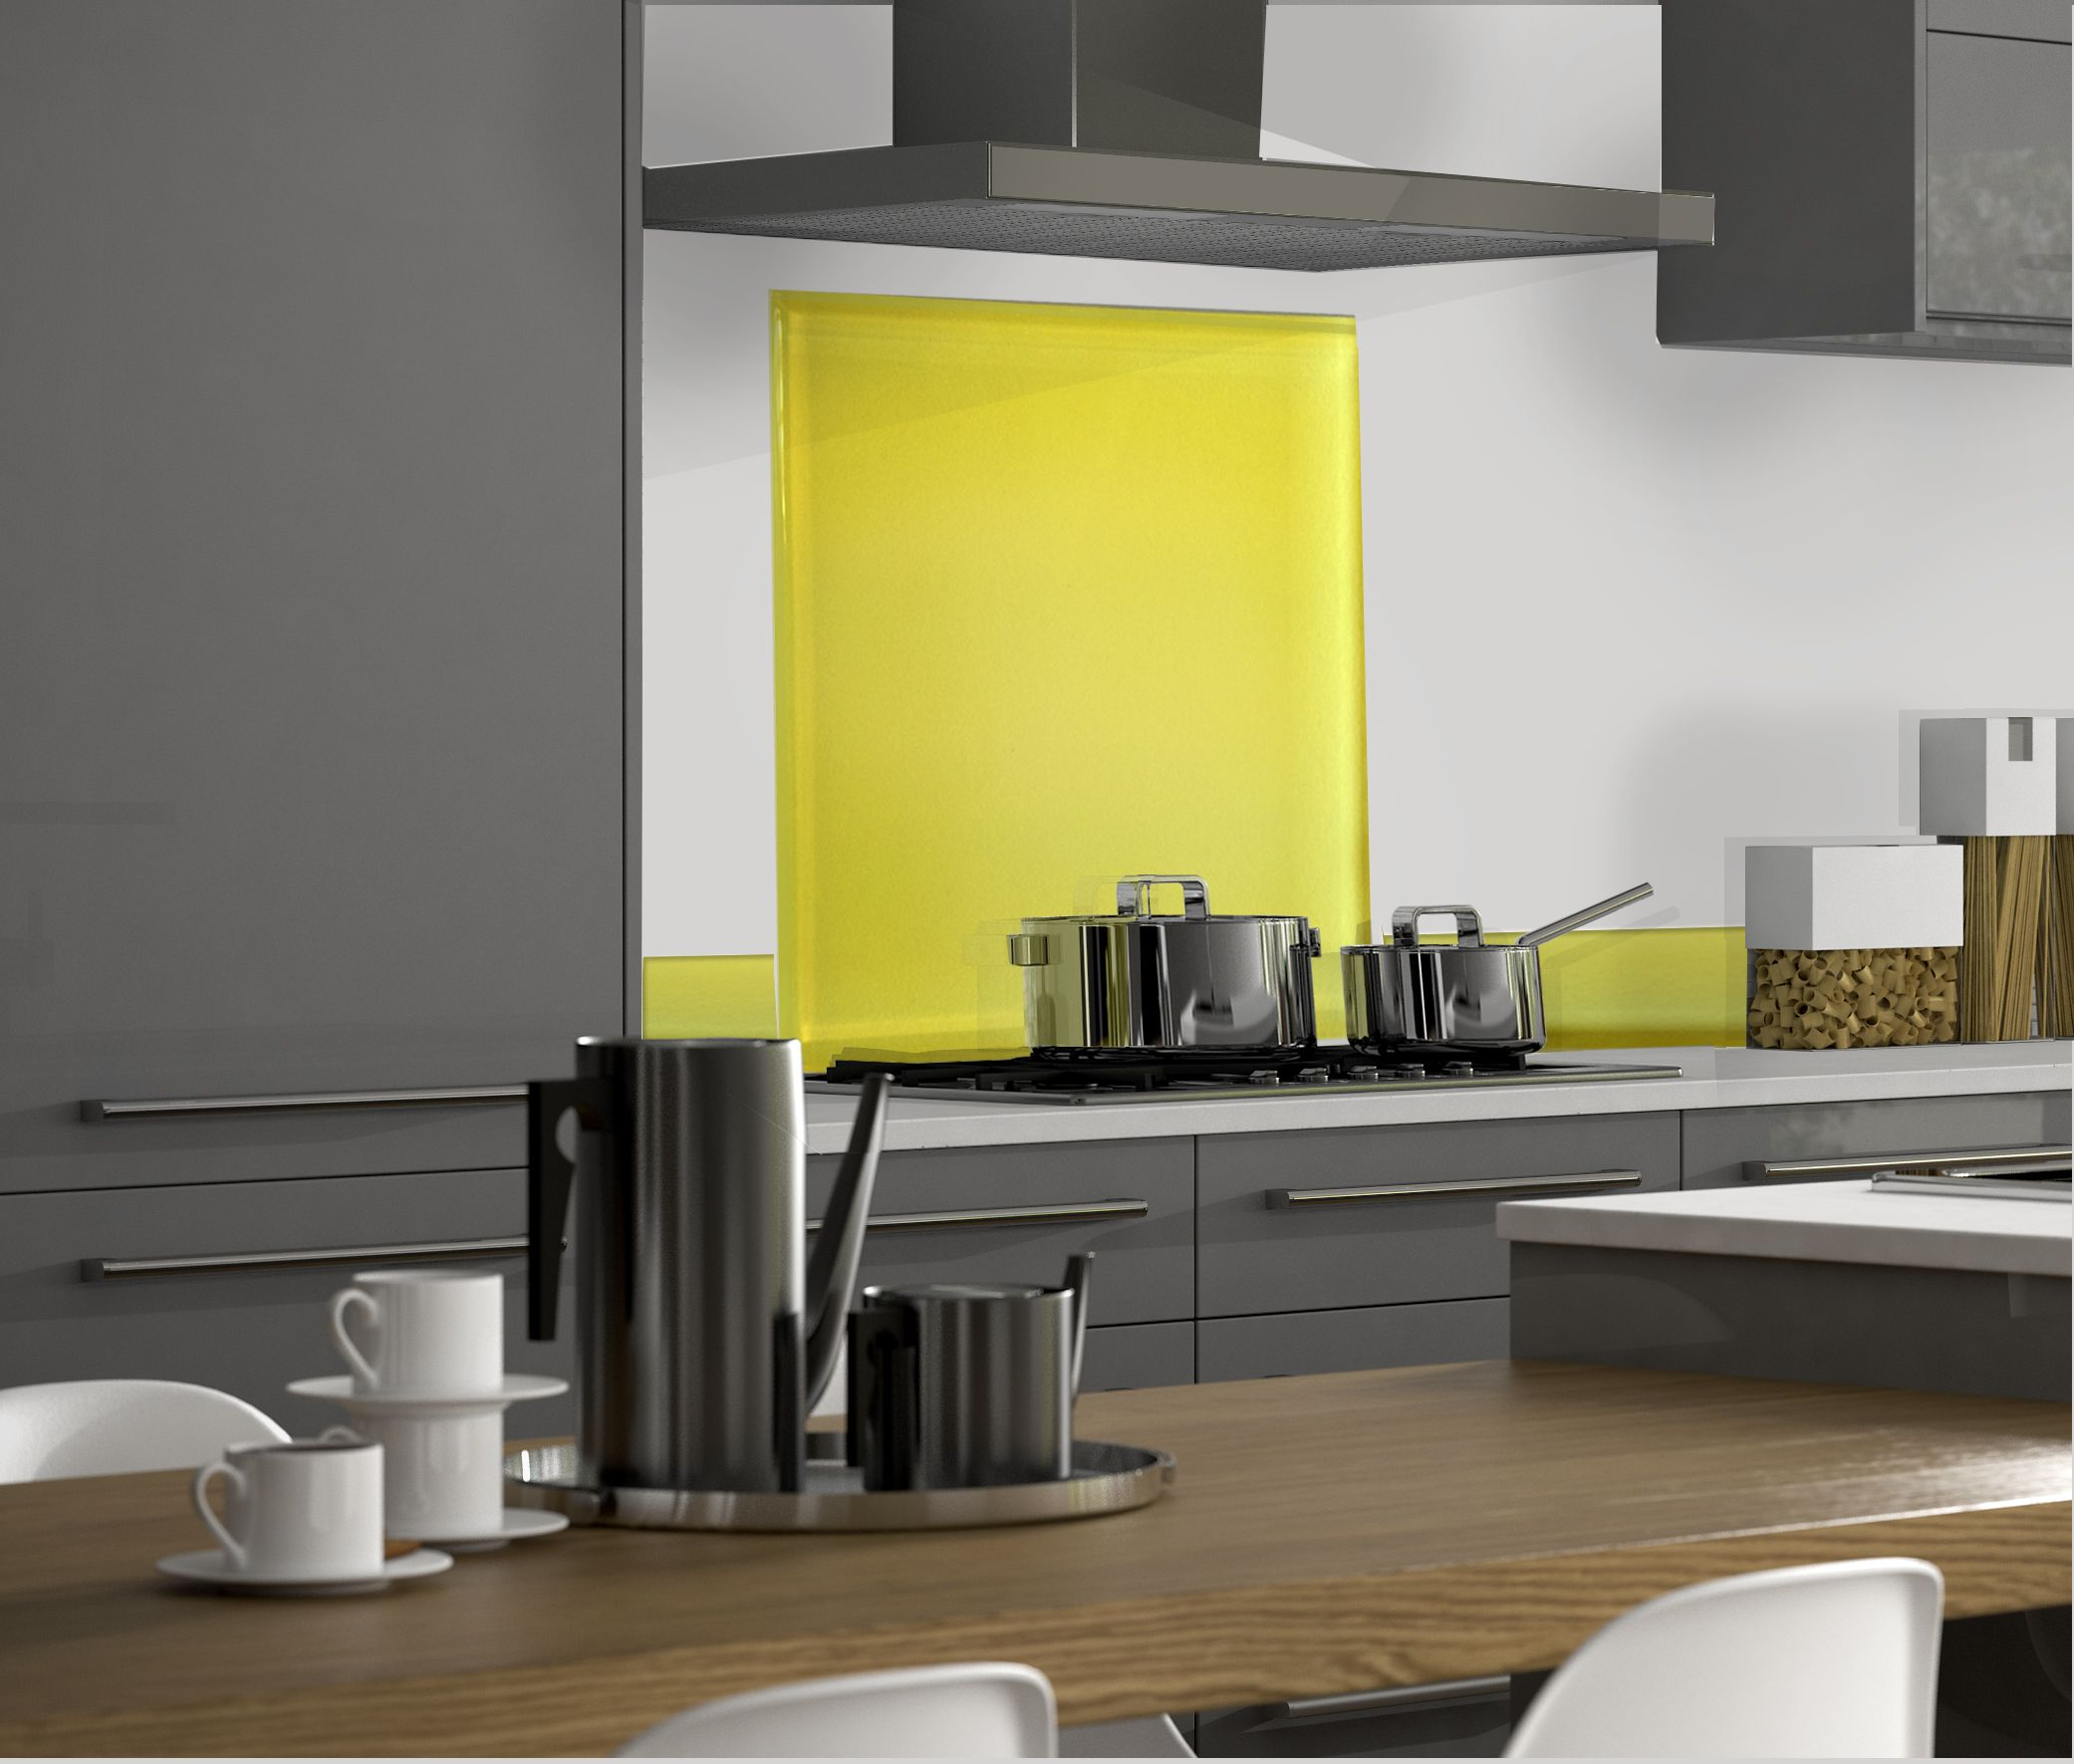 Credence Cuisine: Lemon Glass Splashback #backsplash #kitchen #kitchens